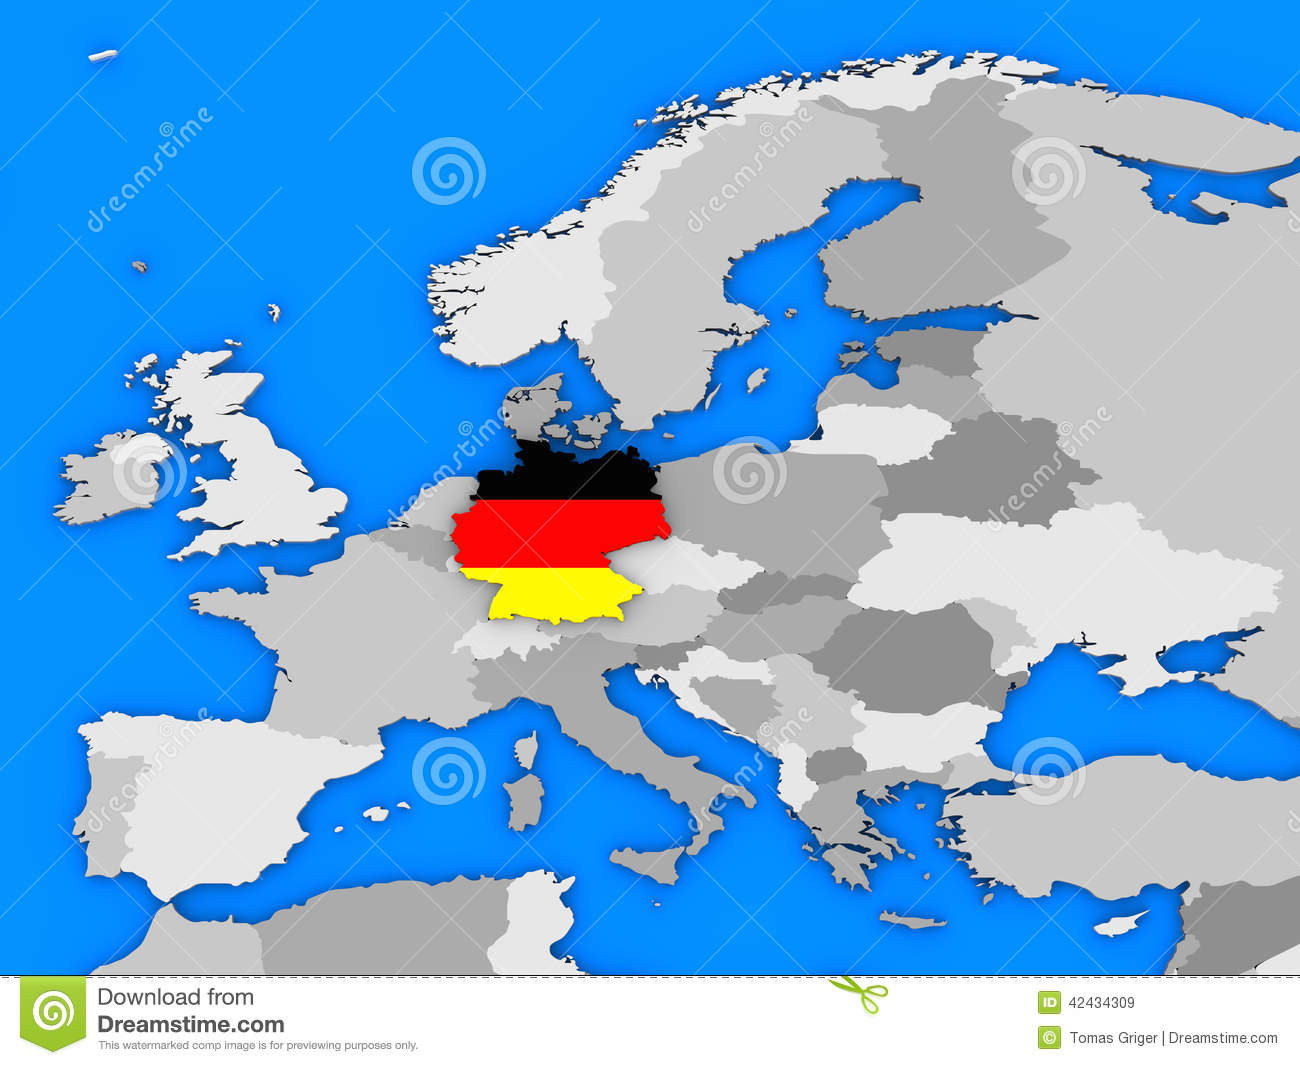 Germany Standing Out Of Map Illustration Image 42434309 – Germany Europe Map